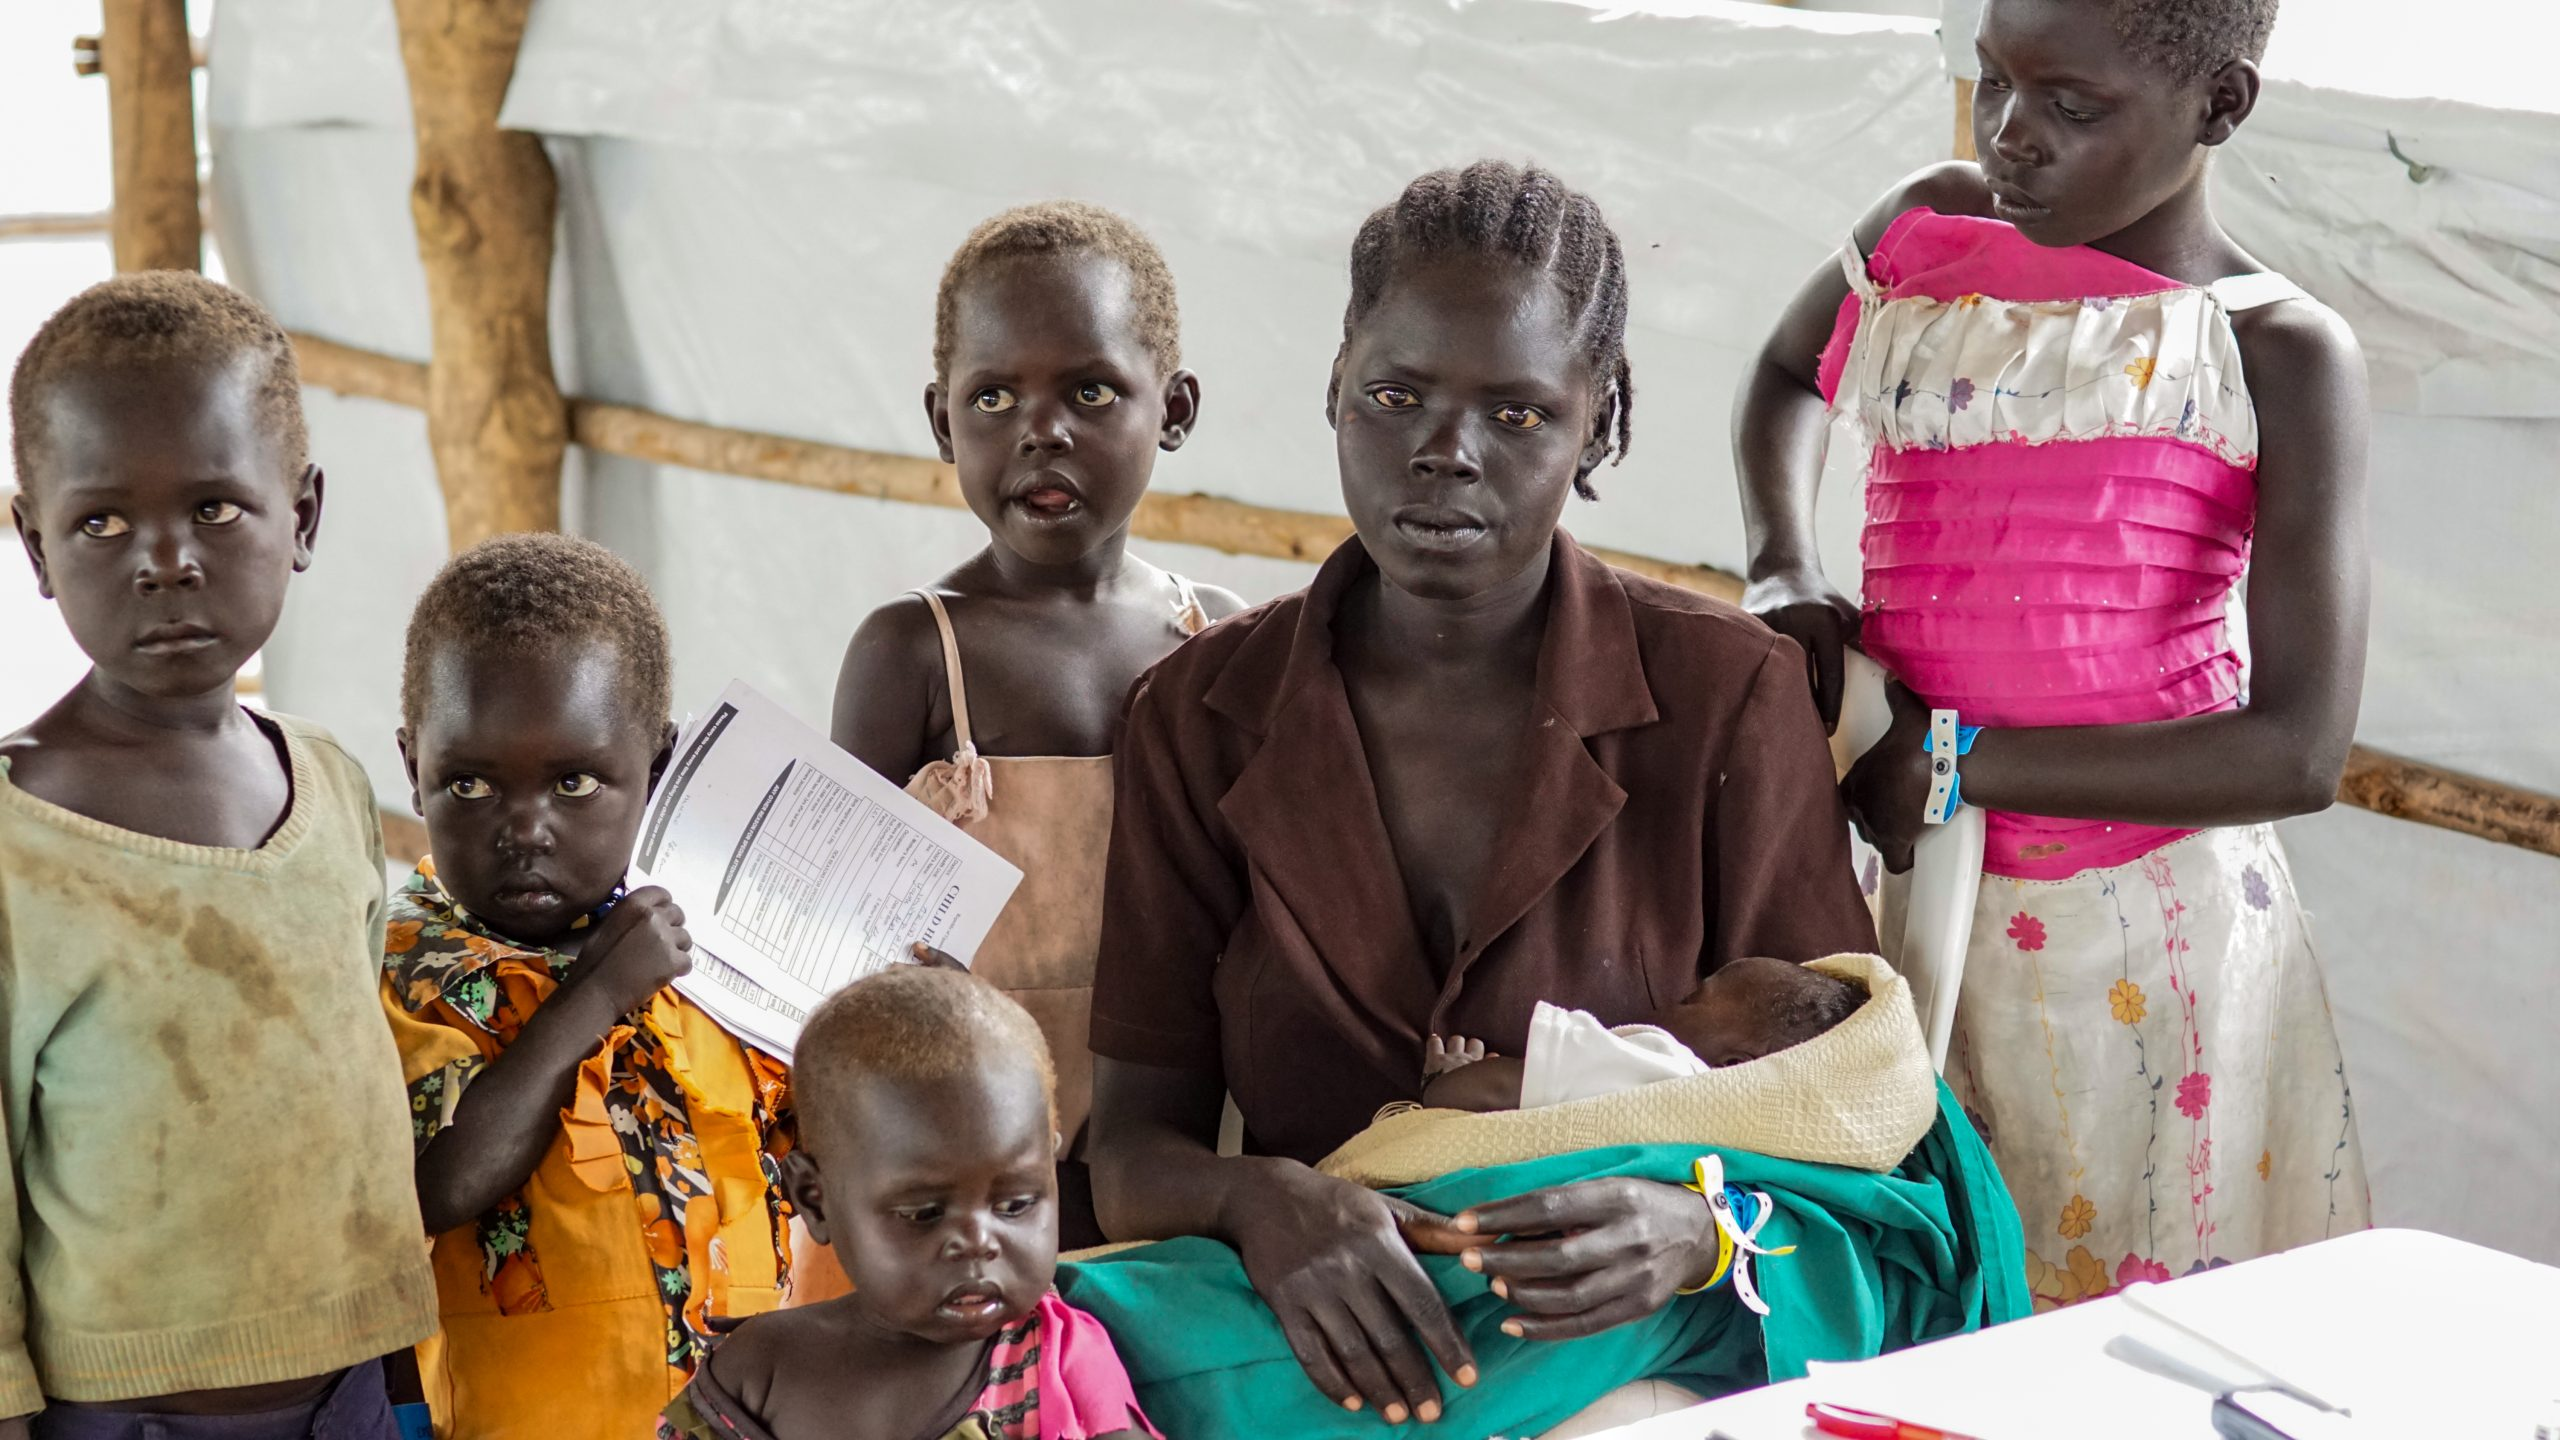 Joan Jane is 28-year-old mother to six children. Her home town was attacked by rebels who killed her neighbours and stole the cattle. As she safety made to Imvepi Refugee Camp in Uganda, her husband was still trying to leave Juba, South Sudan.